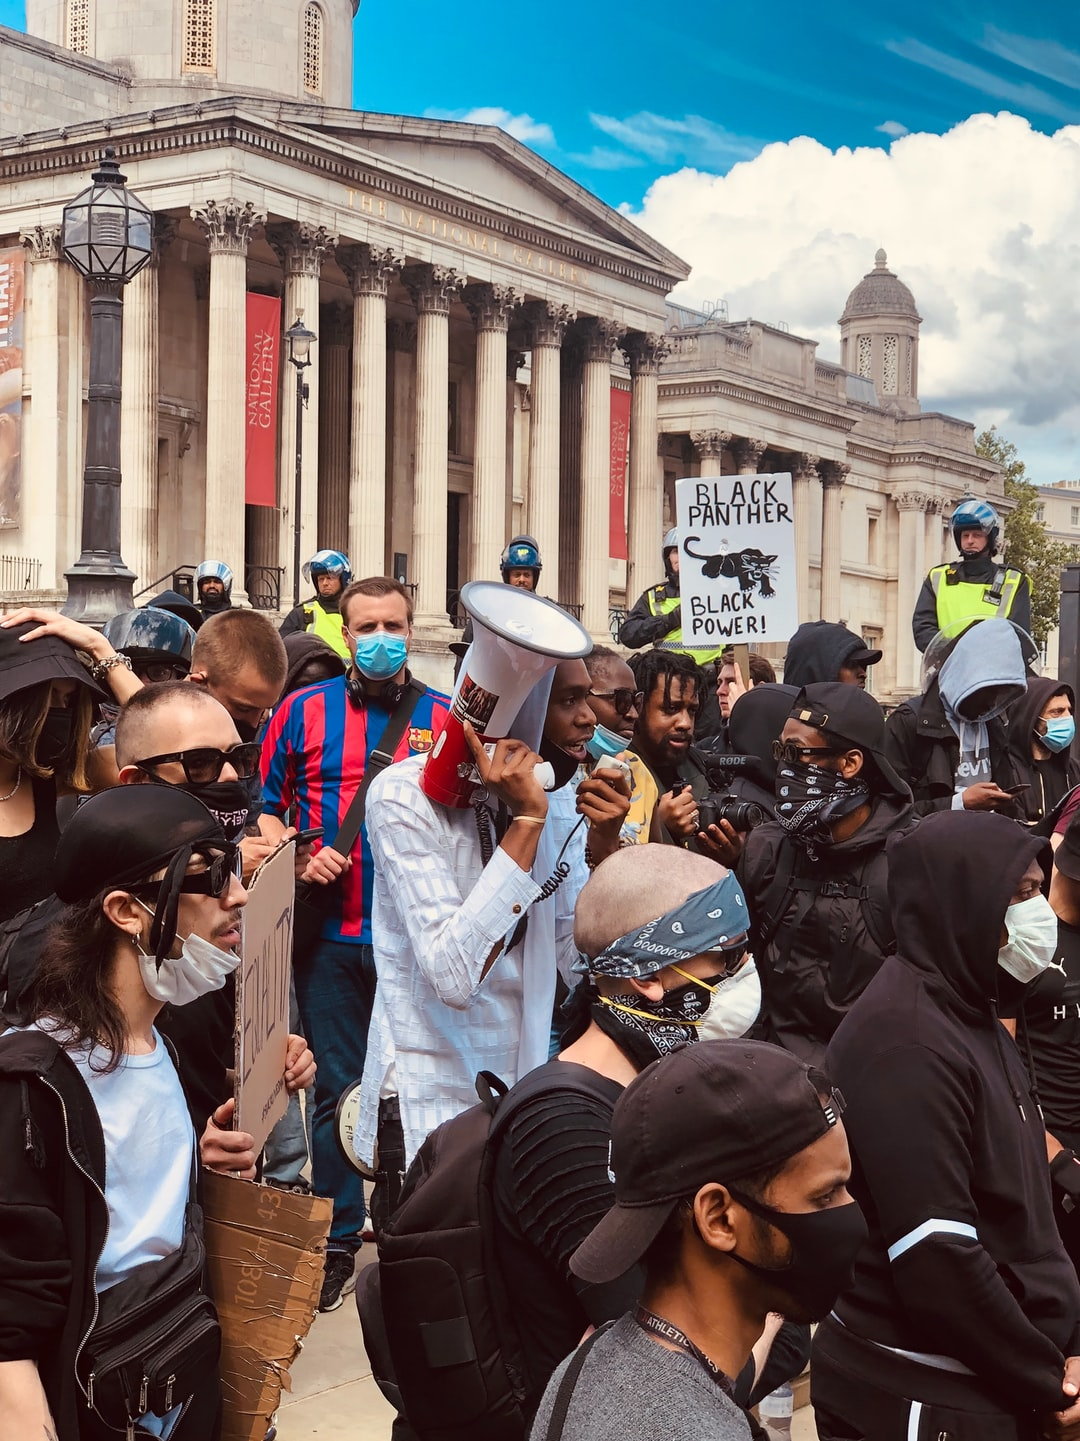 Black lives matter protests, London.